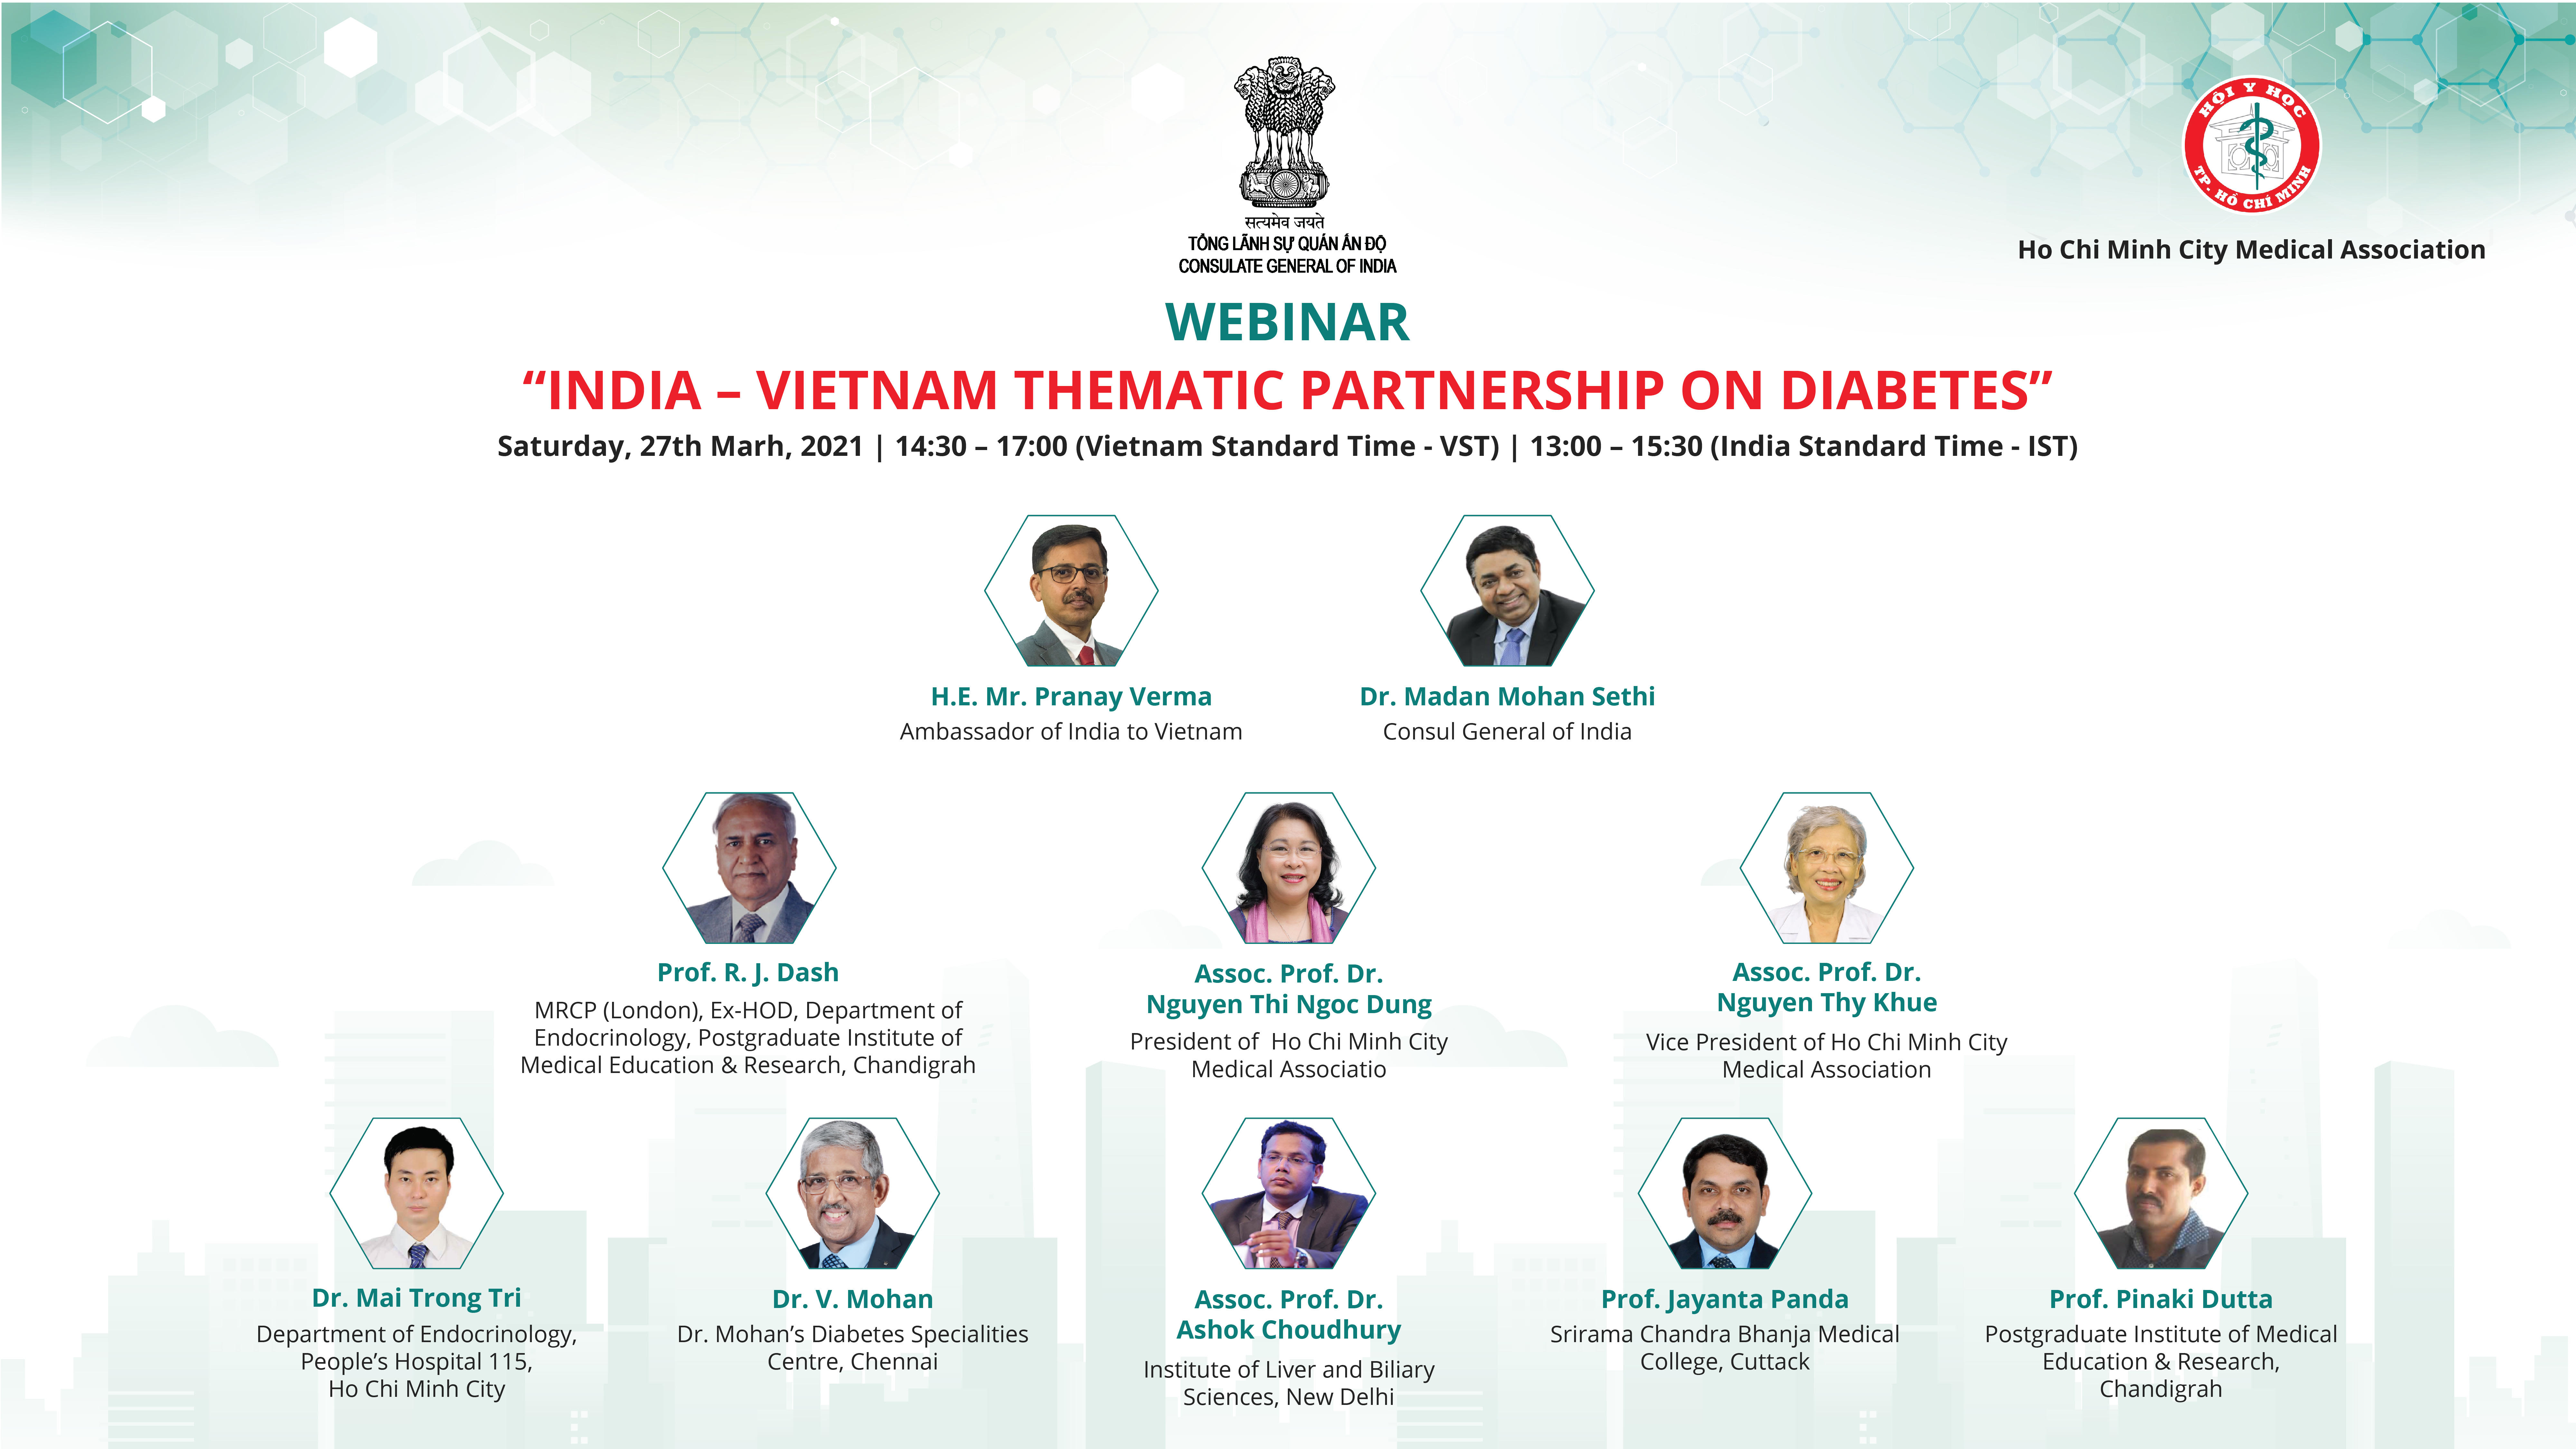 Webinar on 'India - Vietnam Thematic Partnership on Diabetes' (27th March 2021)